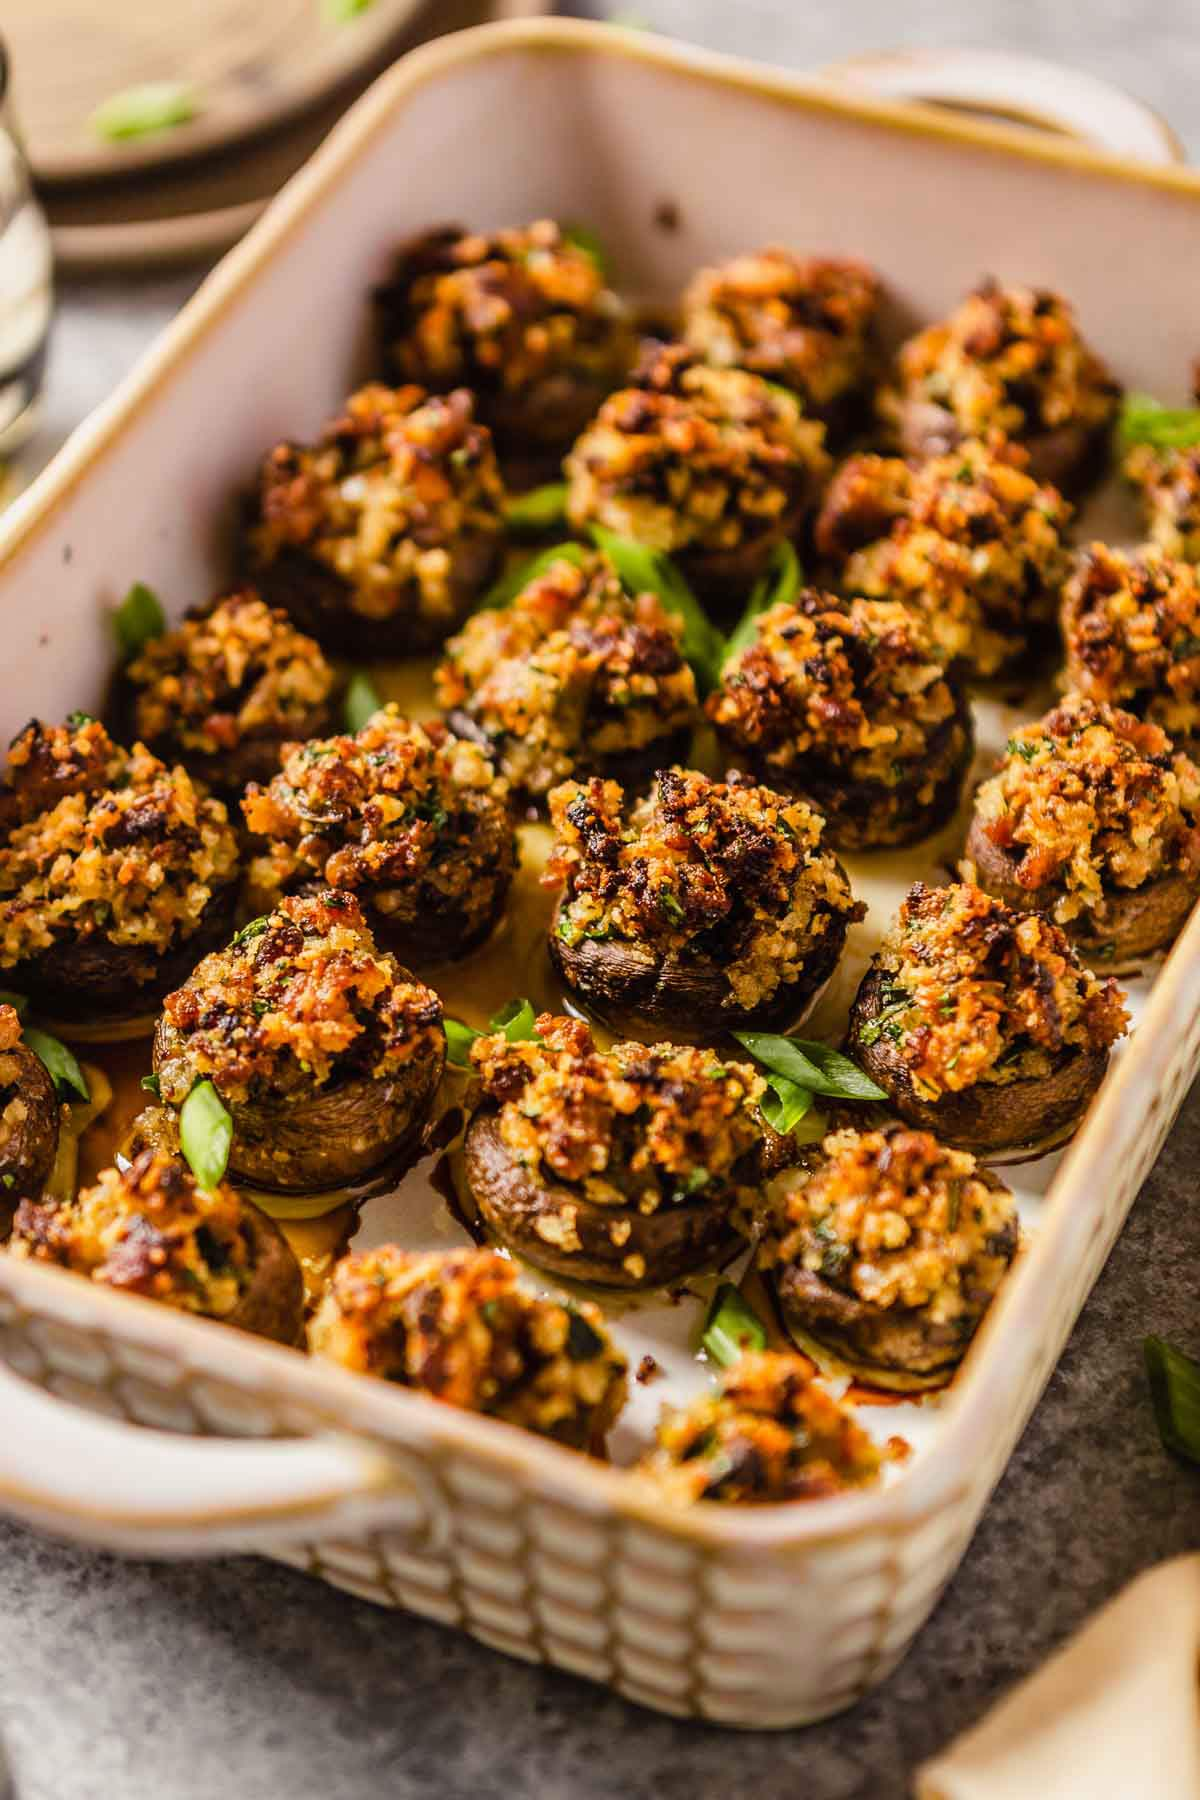 A rectangular baking dish with handles filled with sausage stuffed mushrooms.